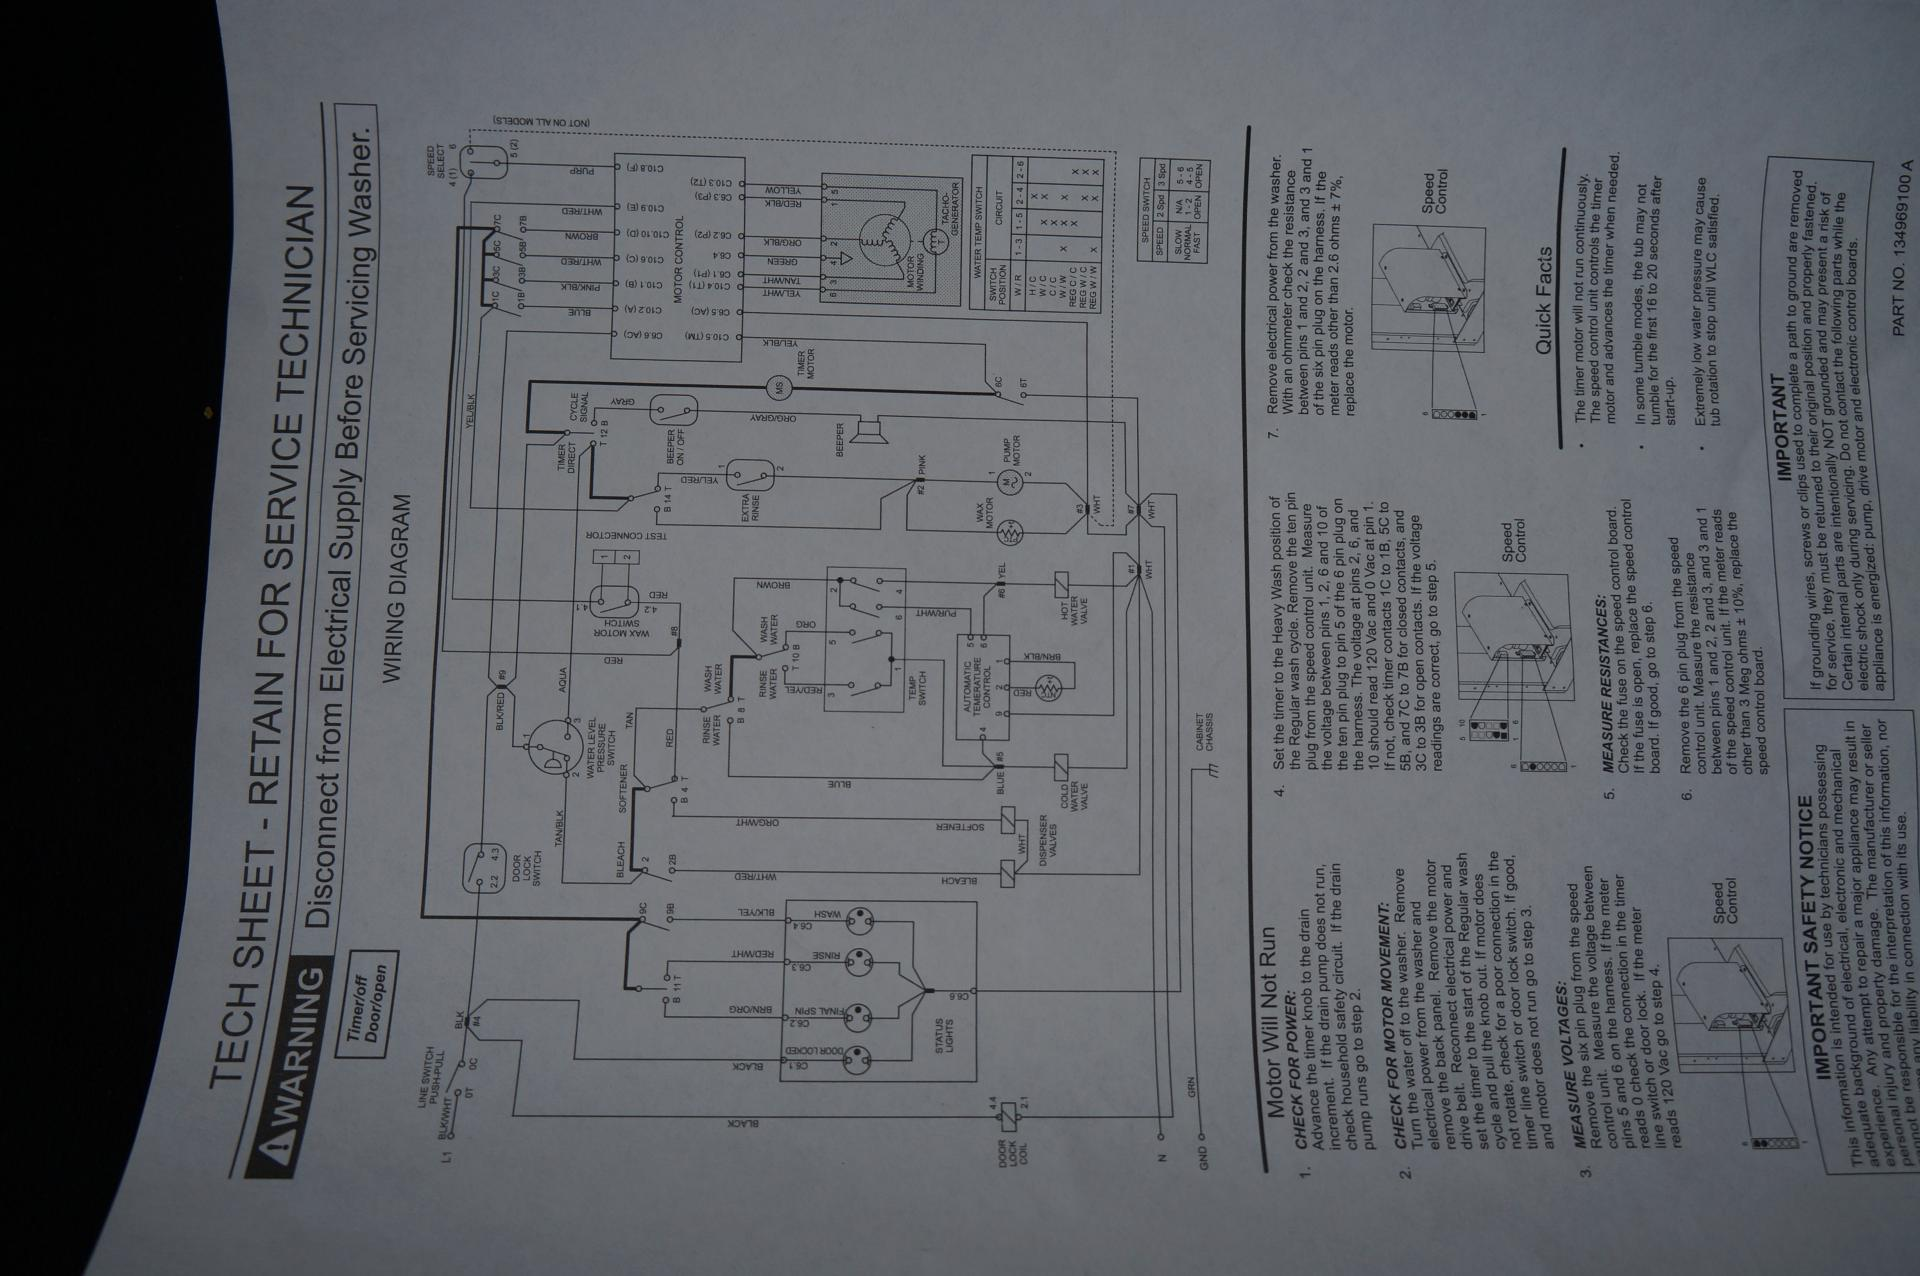 Frigidaire Front Load Washer Wont Start Magic Door Lock Wiring Diagram Click Image For Larger Version Name Dsc02367 Views 30 Size